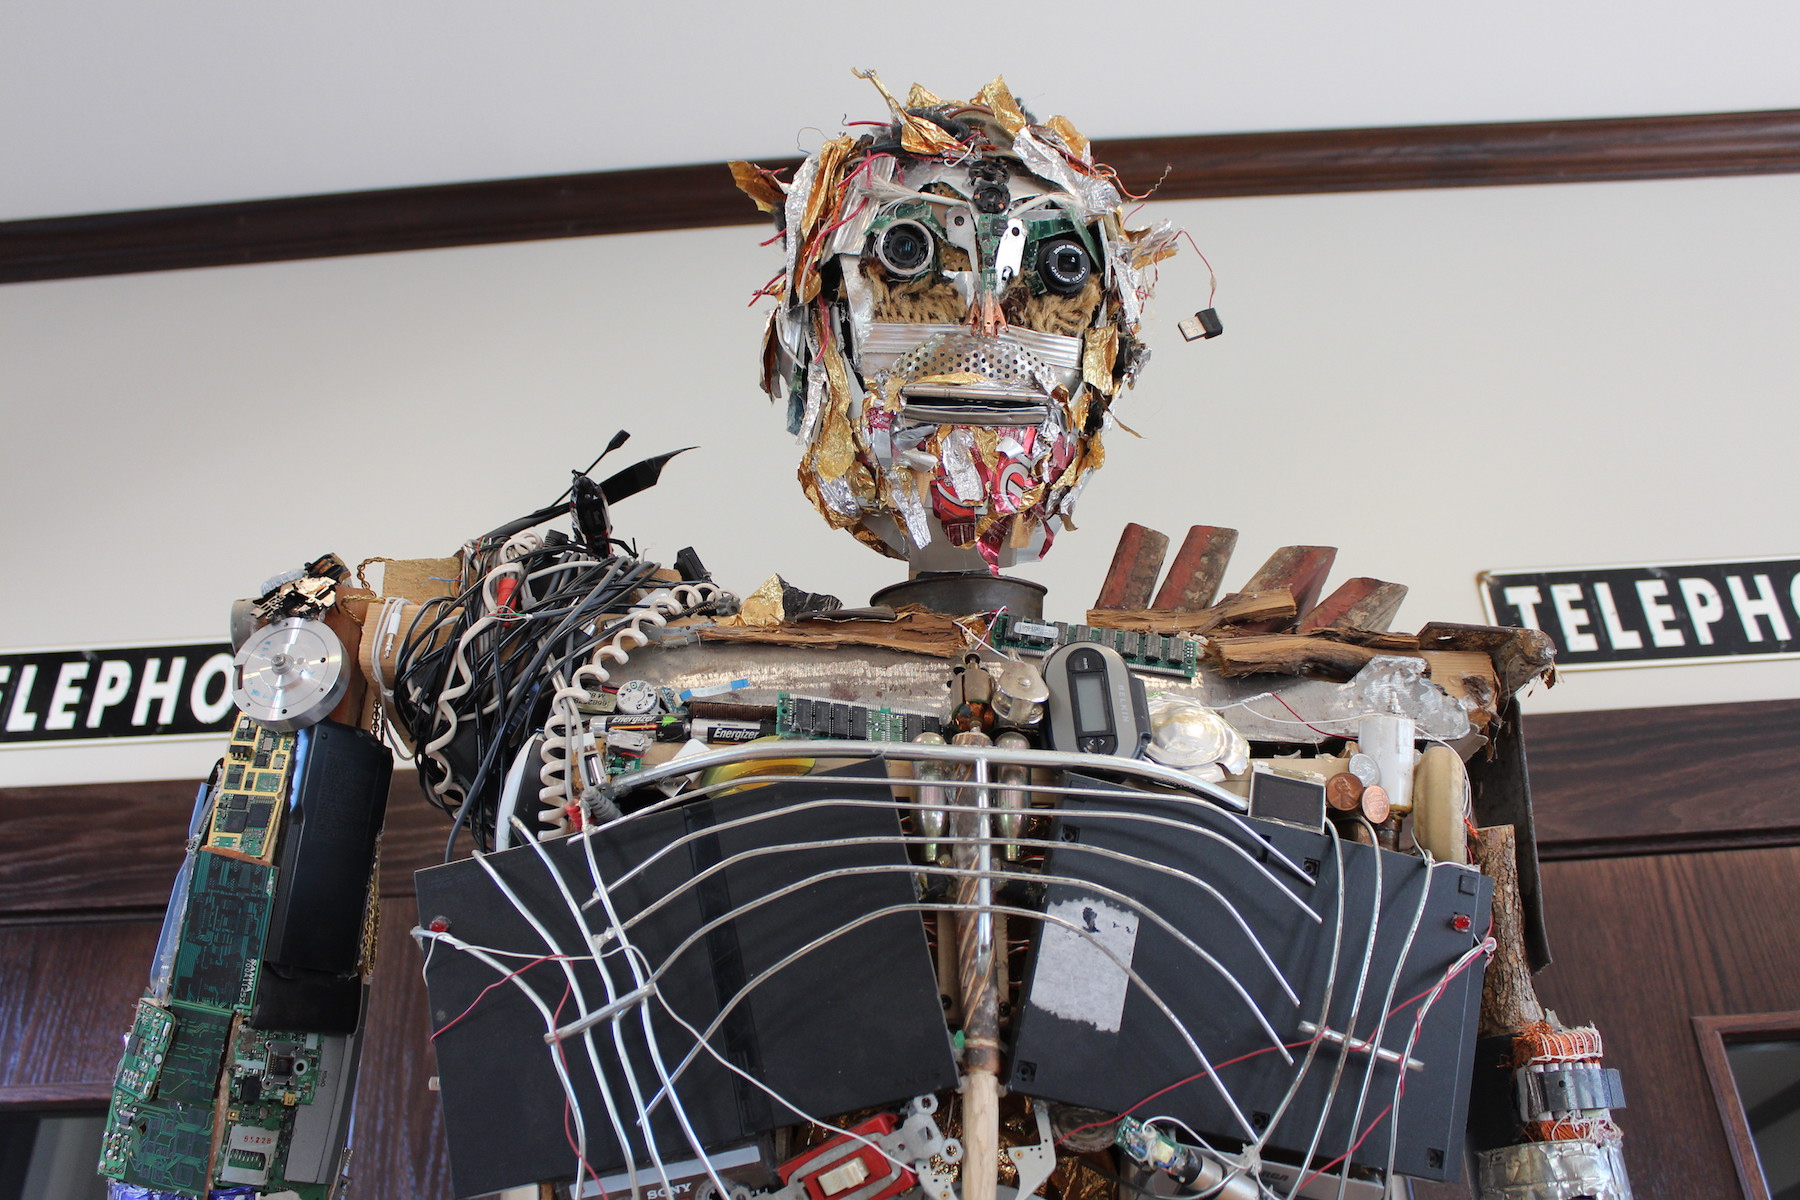 Phillip the Robot Is Seven Feet Tall and Made of Trash